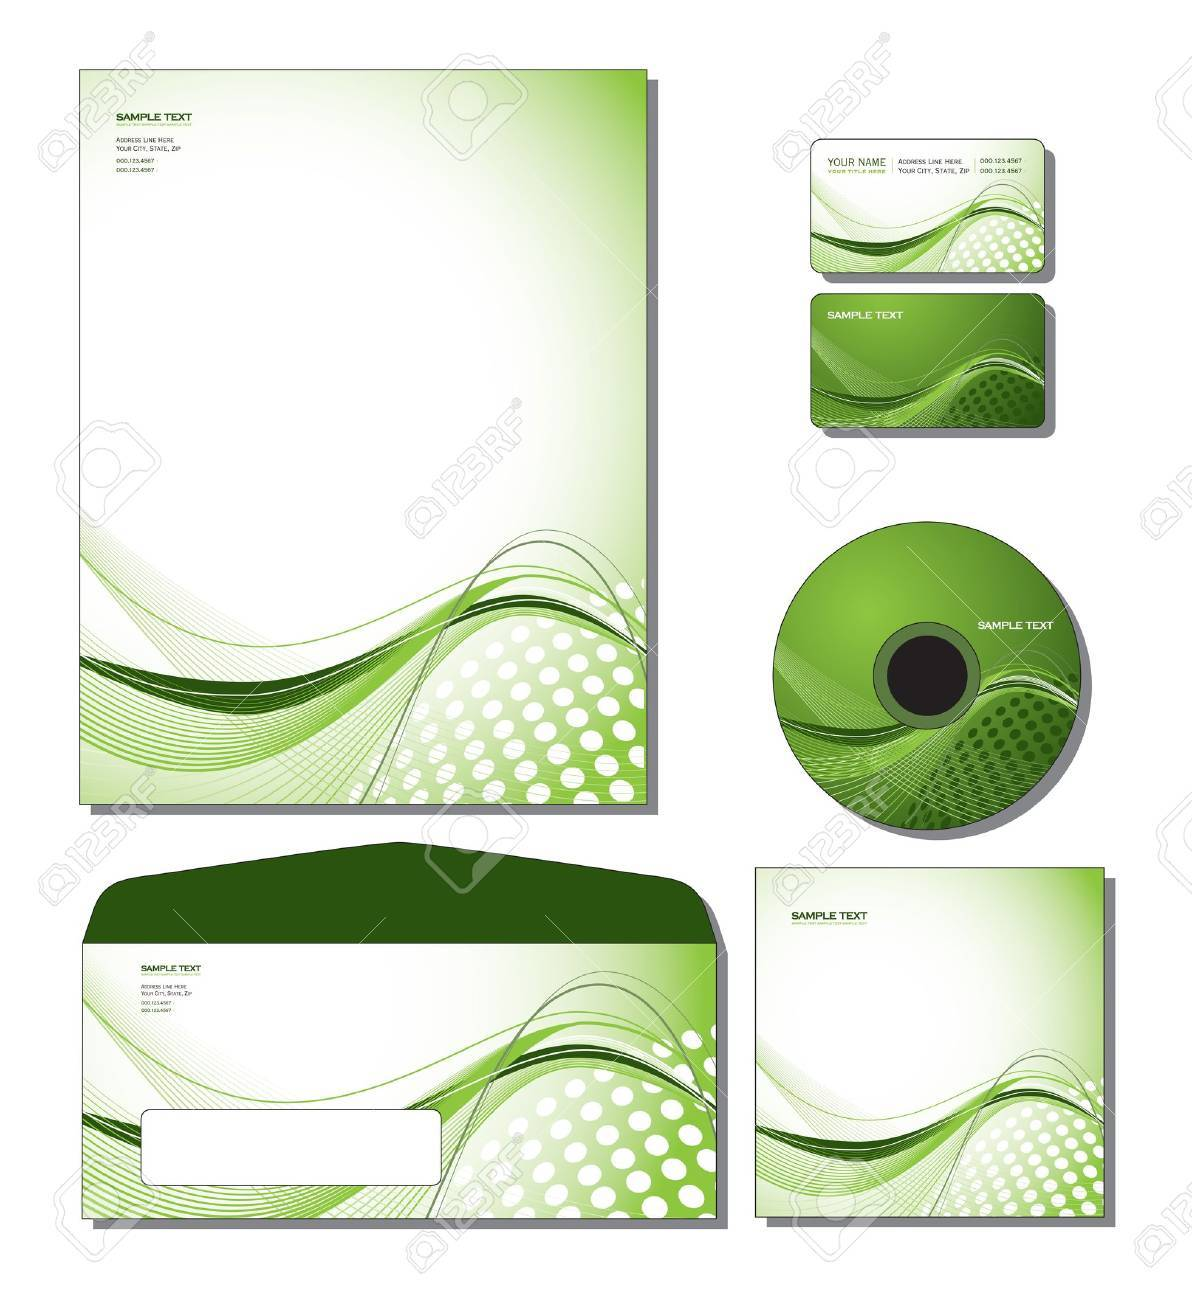 Cd box template download free vector art stock graphics amp images - Vector Cd Template Corporate Identity Template Vector Letterhead Business And Gift Cards